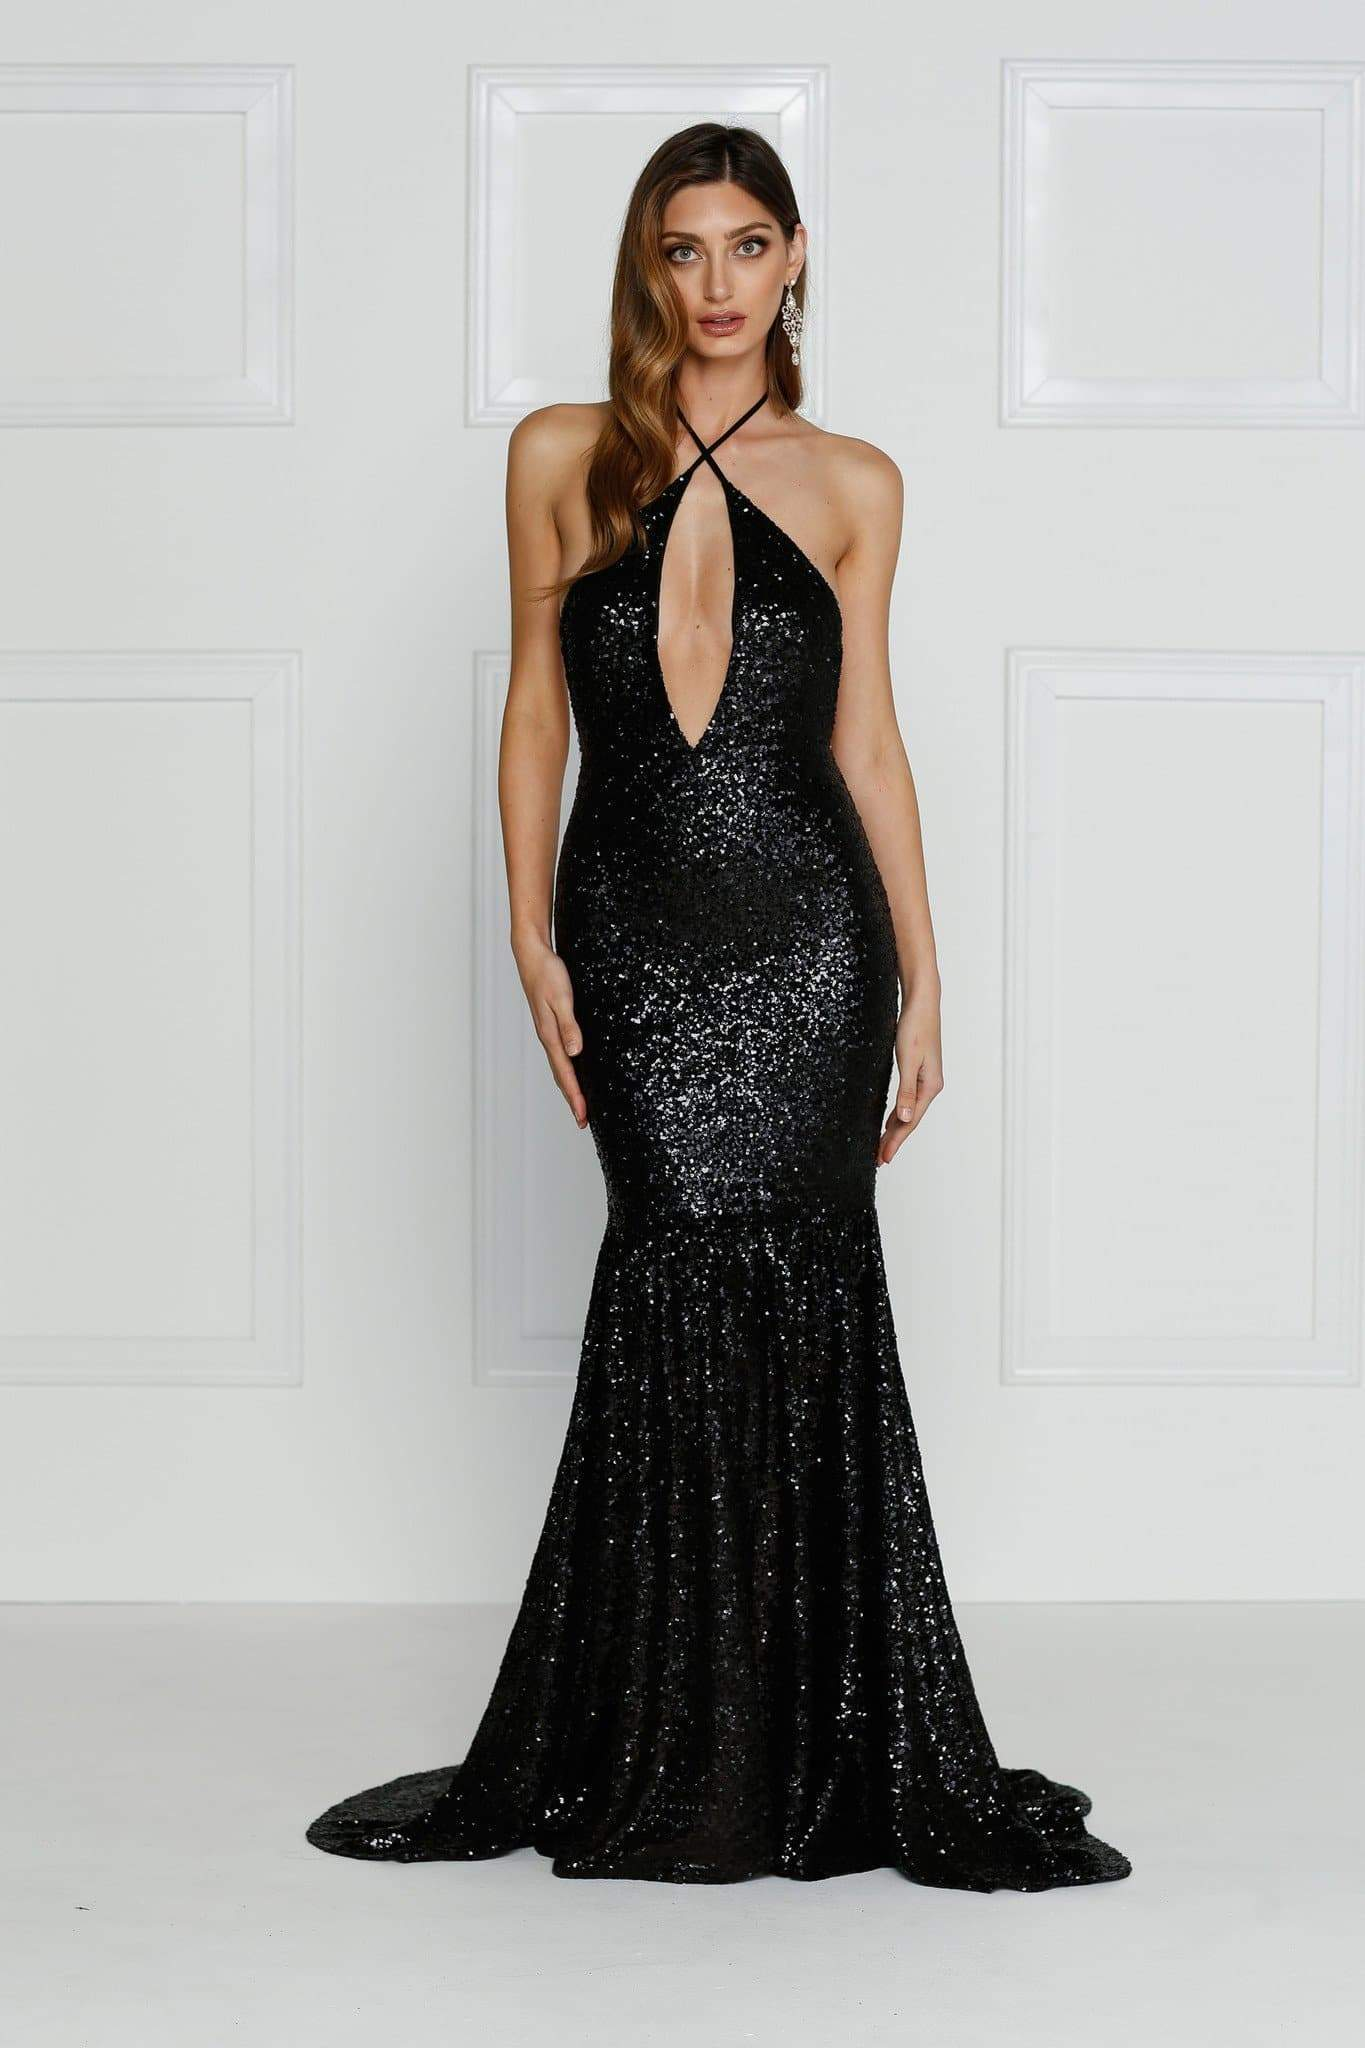 Bolivia - Black Sequin Gown | Plunge Neck, Low Back & Mermaid Train